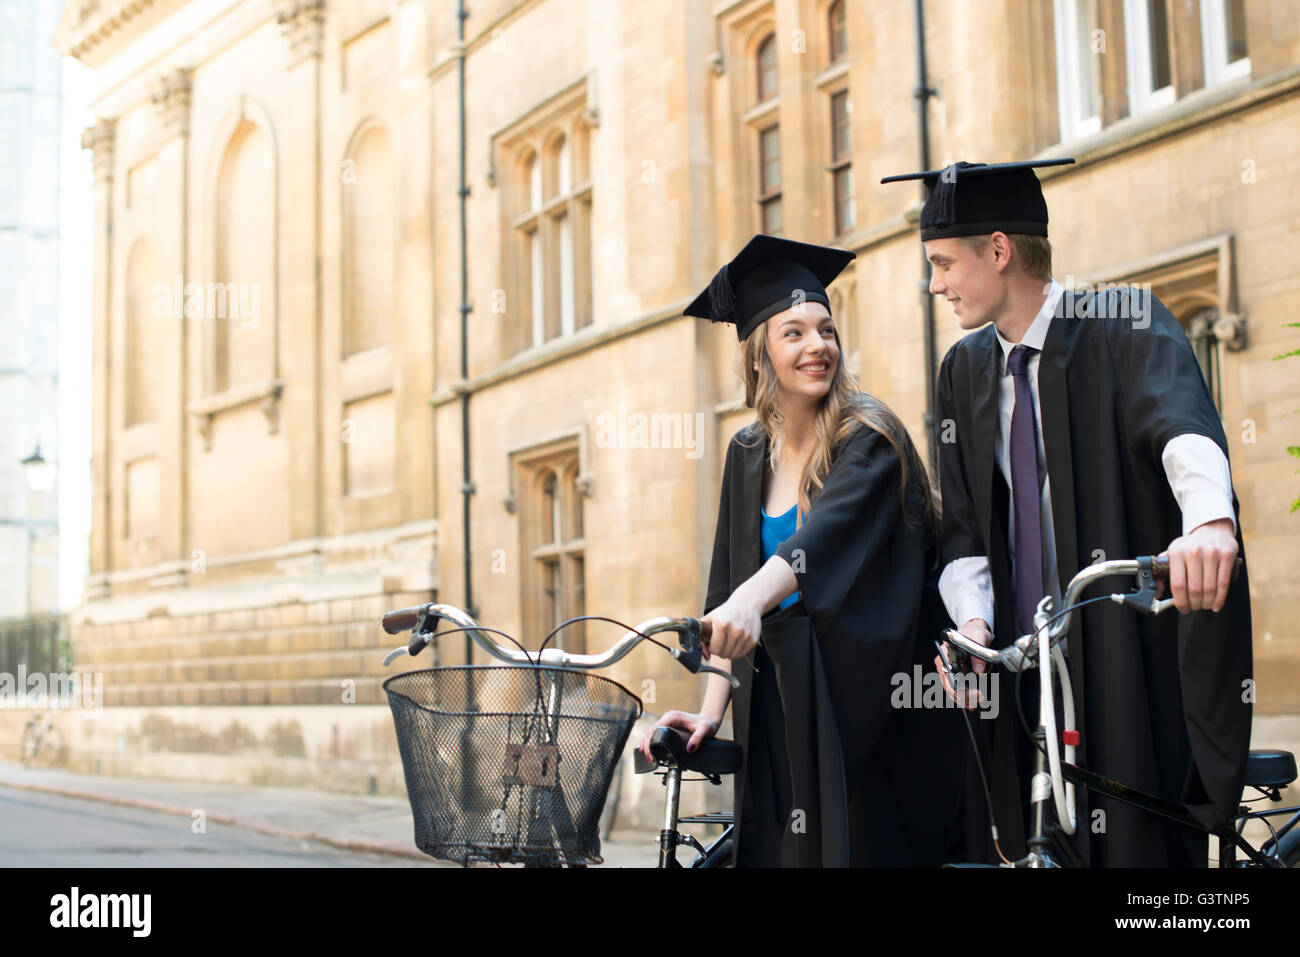 University Gowns Stock Photos & University Gowns Stock Images - Alamy